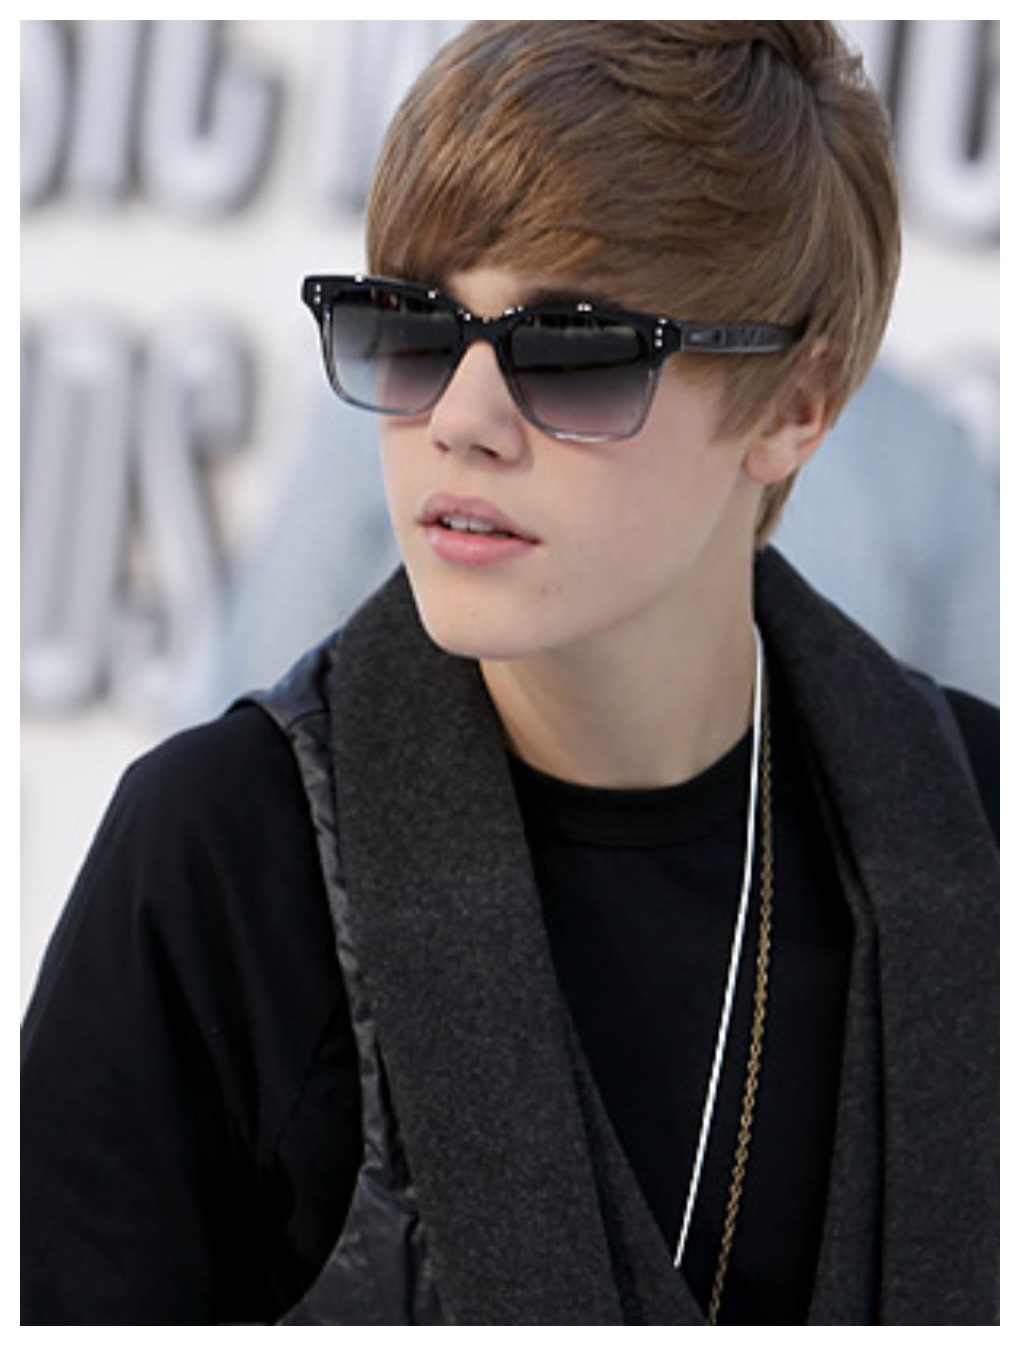 Singer Justin Bieber Hairstyle Haircut Images